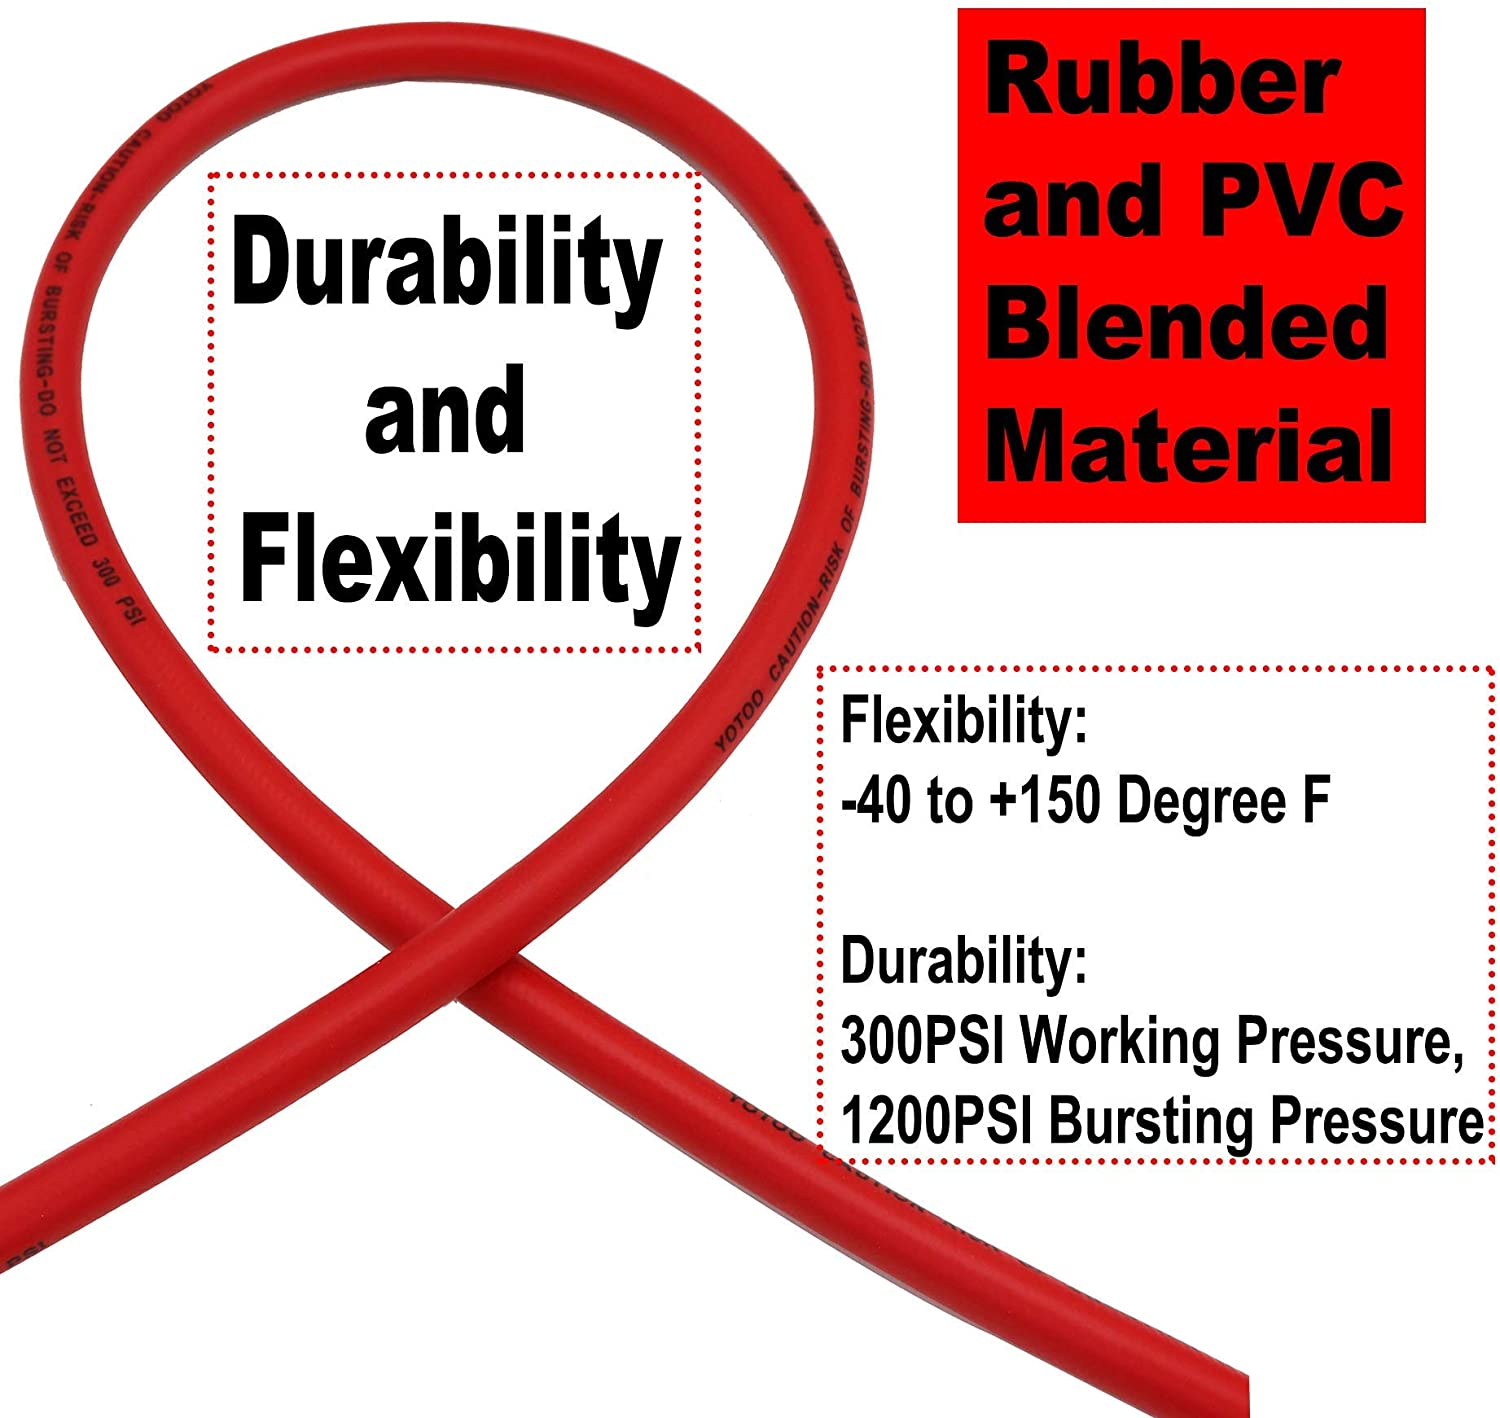 YOTOO Hybrid Air Hose 3/8-Inch by 50-Feet 300 PSI Heavy Duty, Lightweight, Kink Resistant, All-Weather Flexibility with 1/4-Inch Brass Male Fittings, Bend Restrictors, Red - -